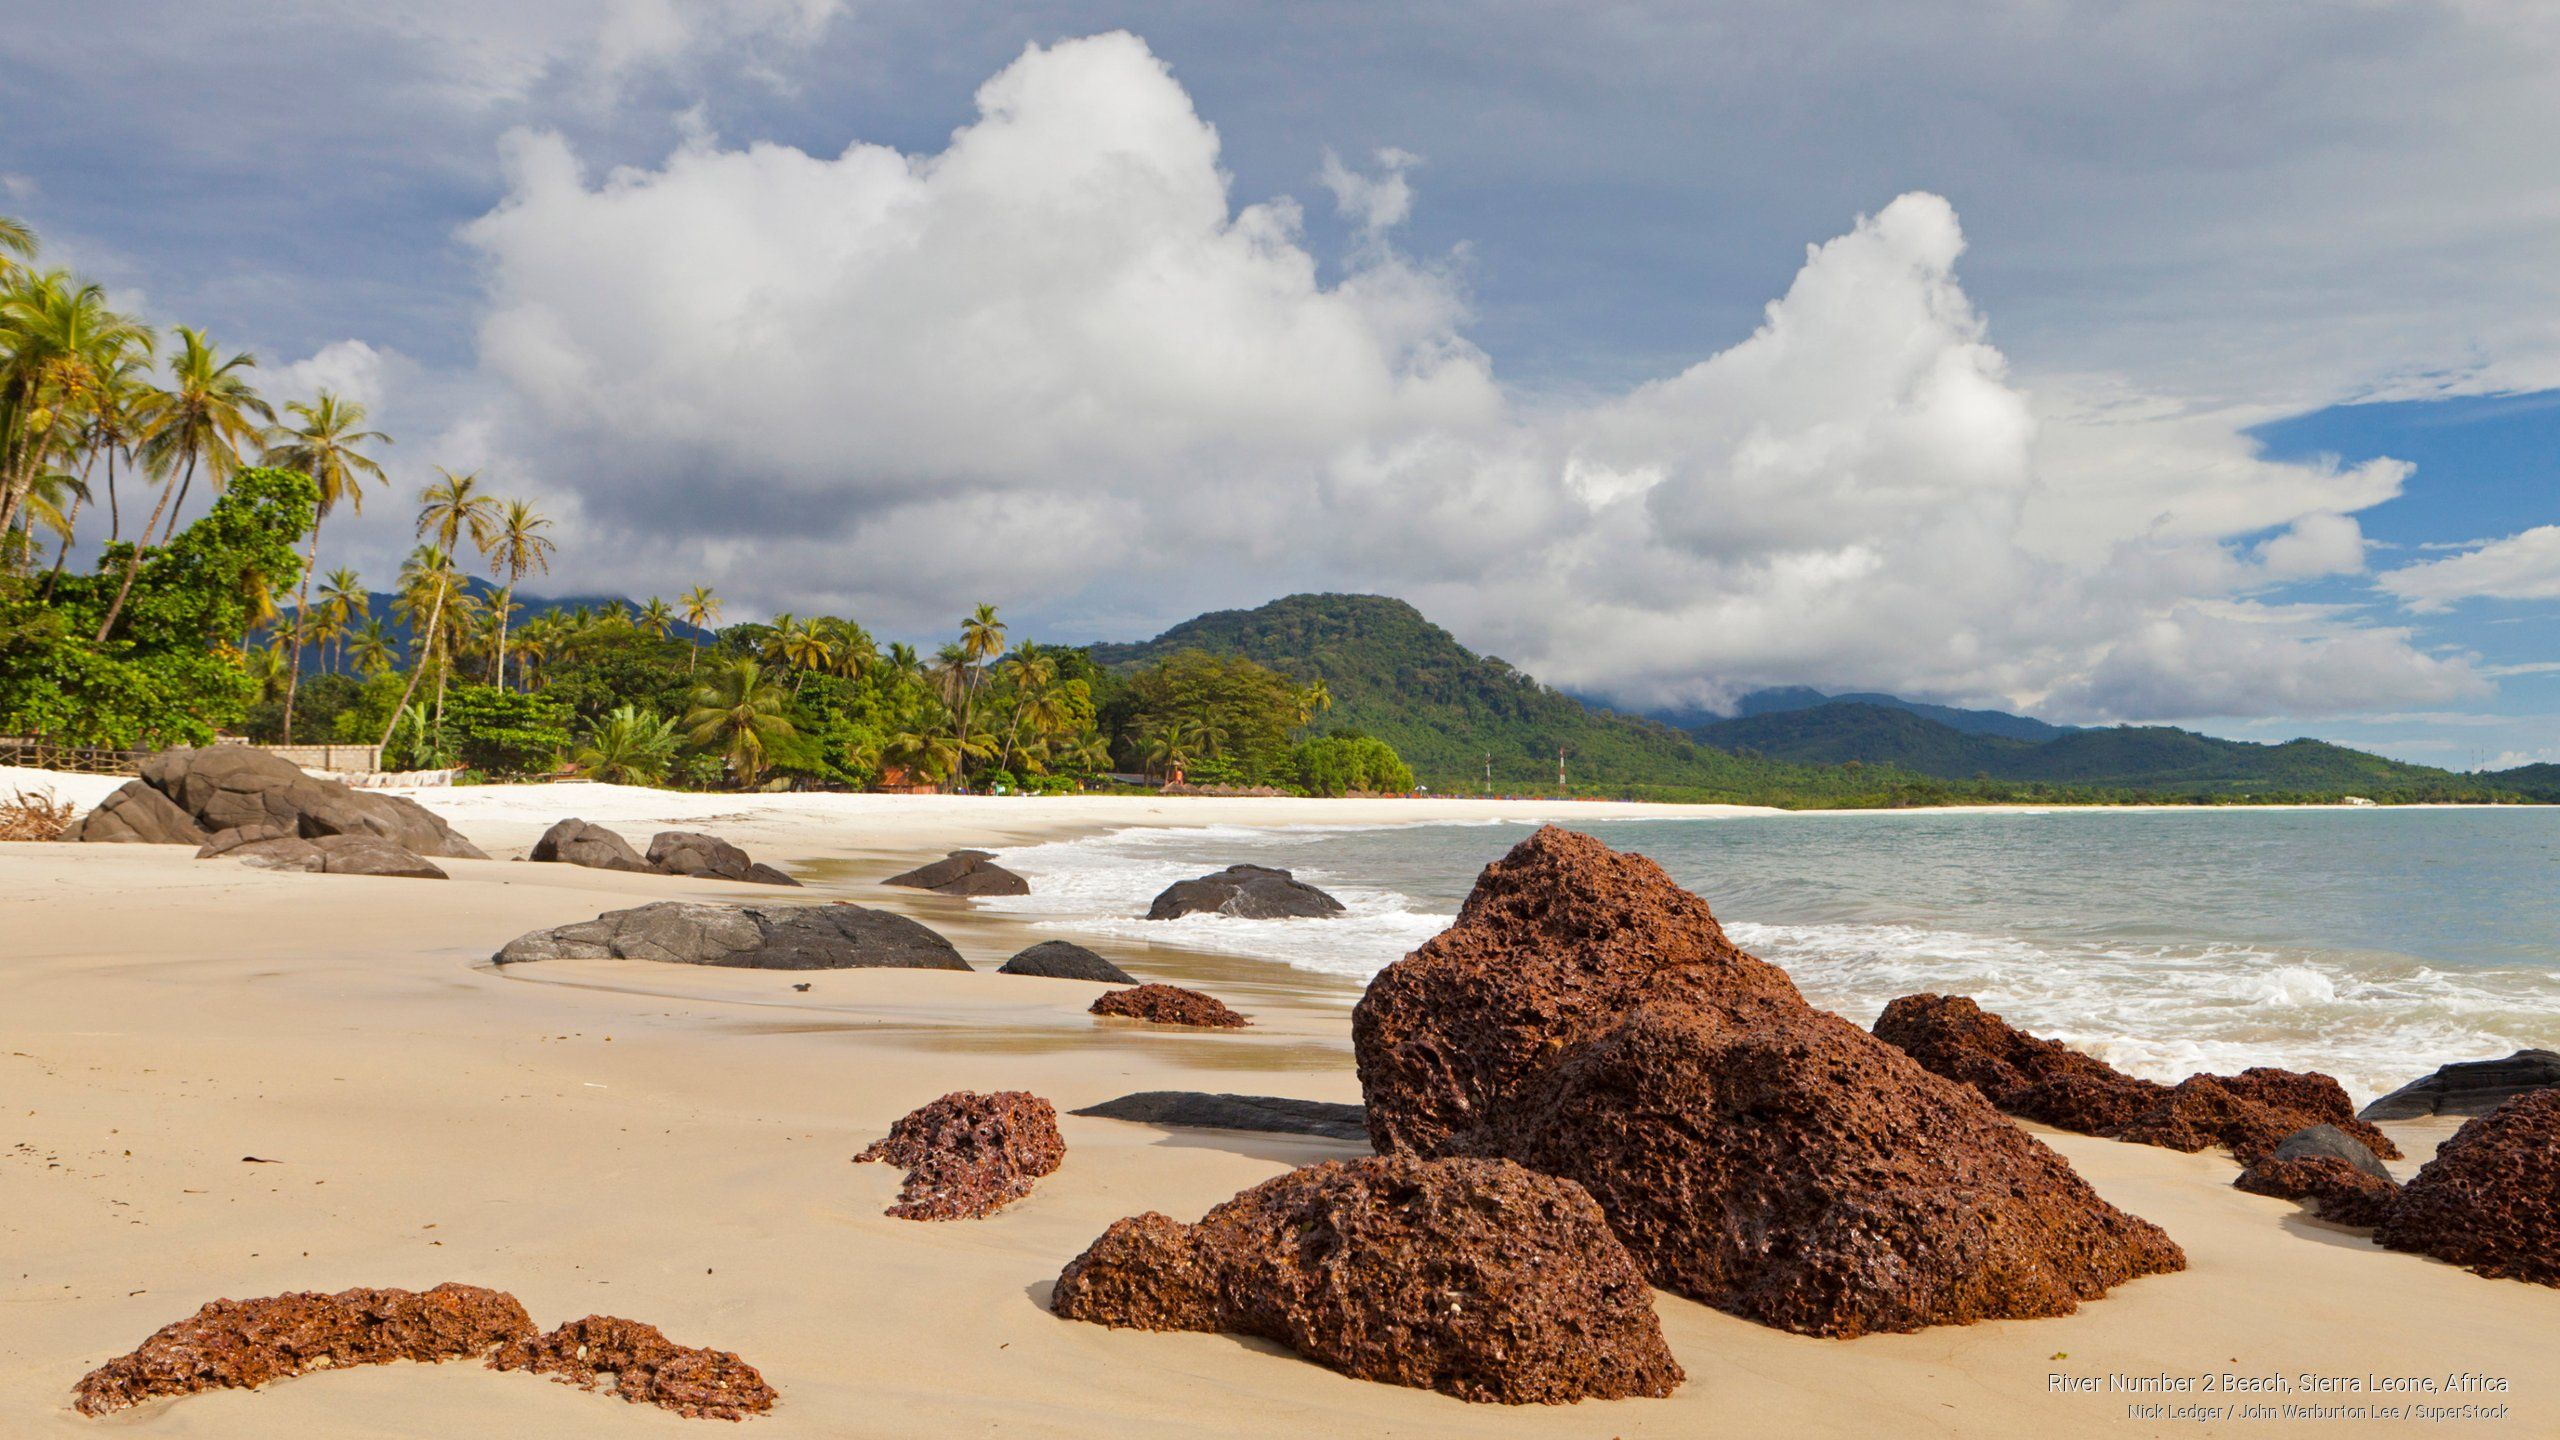 river #2 beach sierra leone | Free Africa Wallpaper - River Number 2 Beach, Sierra Leone, Africa